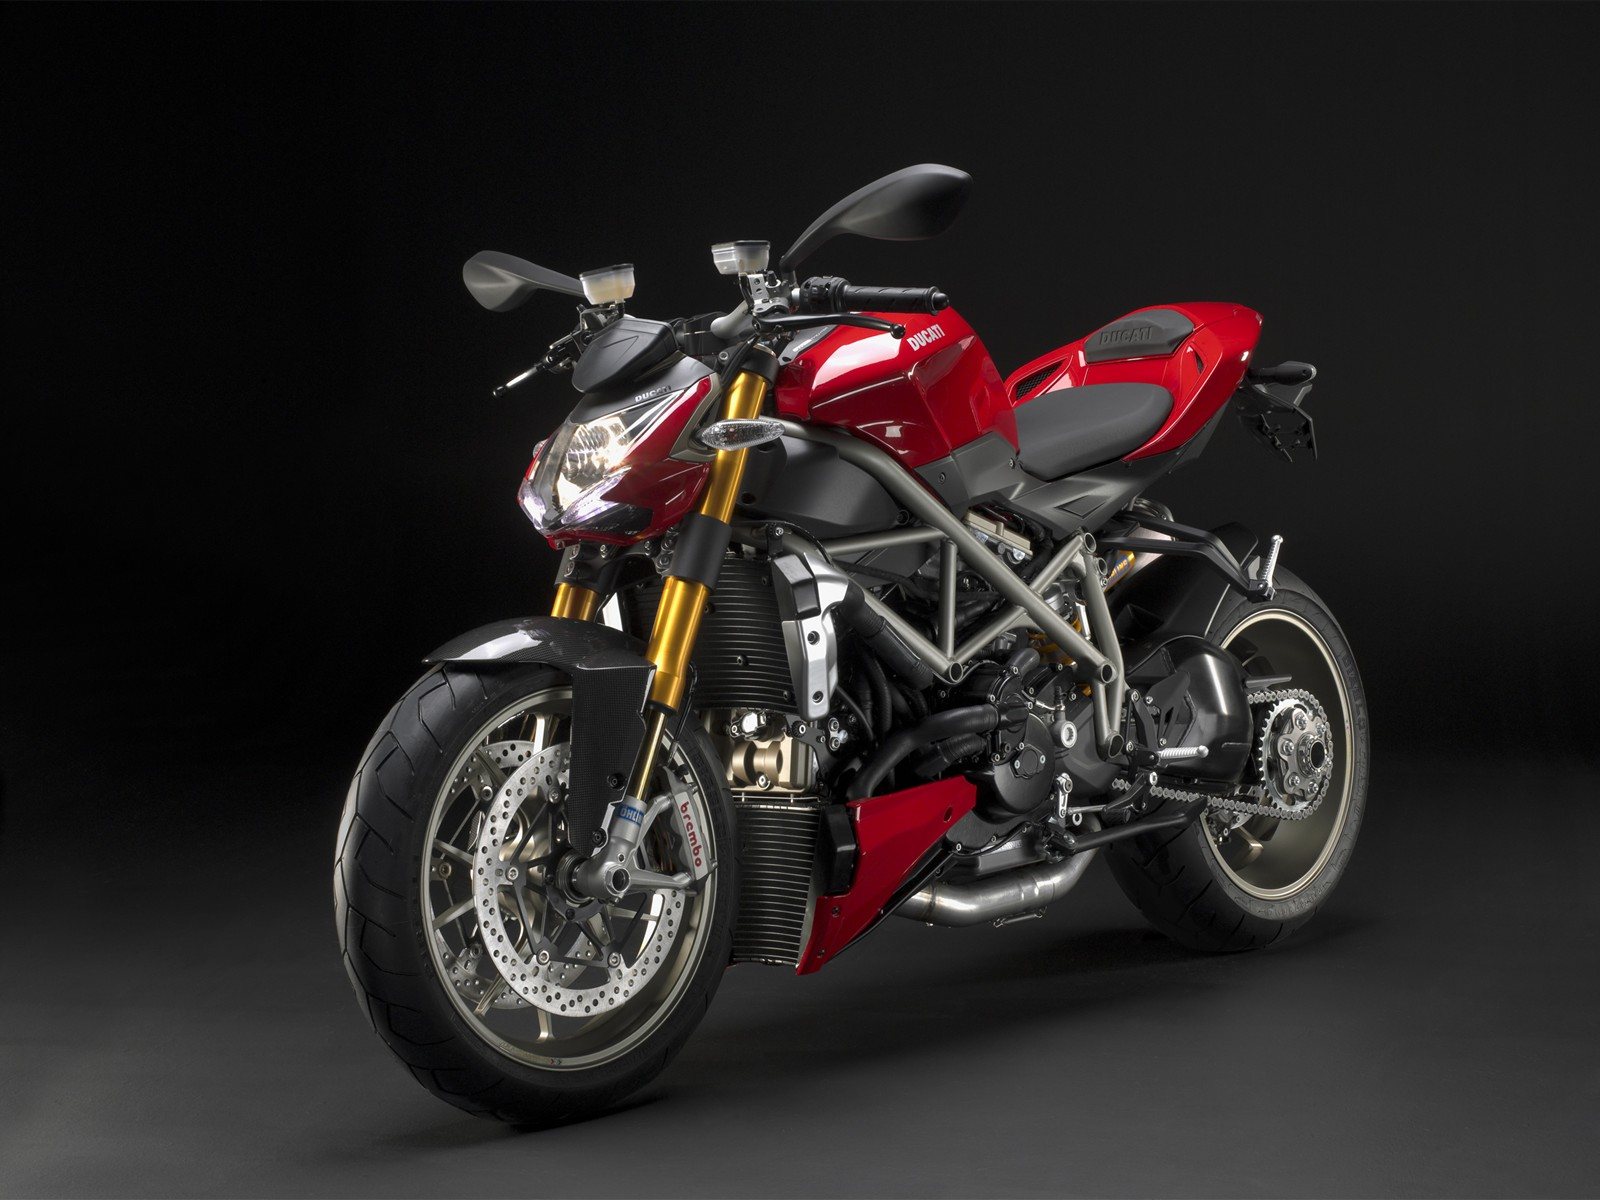 Ducati Streetfighter Wallpapers HD Wallpapers 1600x1200